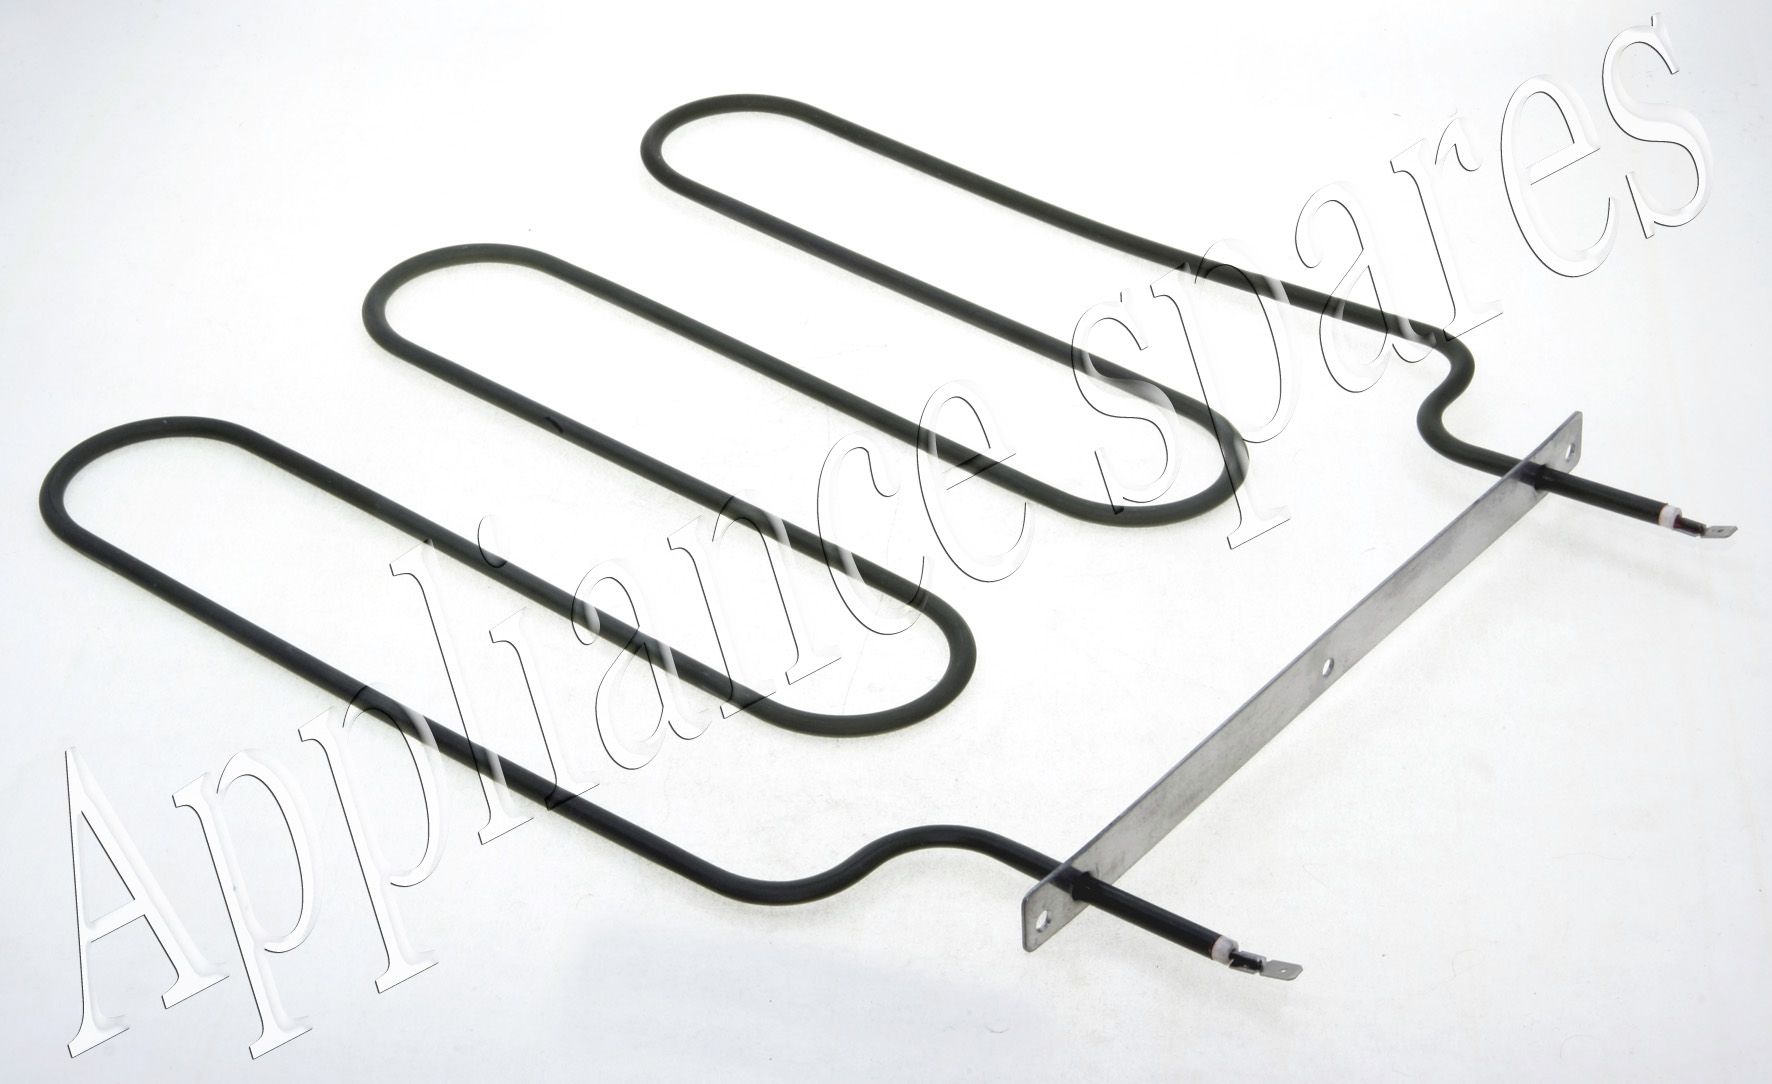 kelvinator oven bake element 1250w